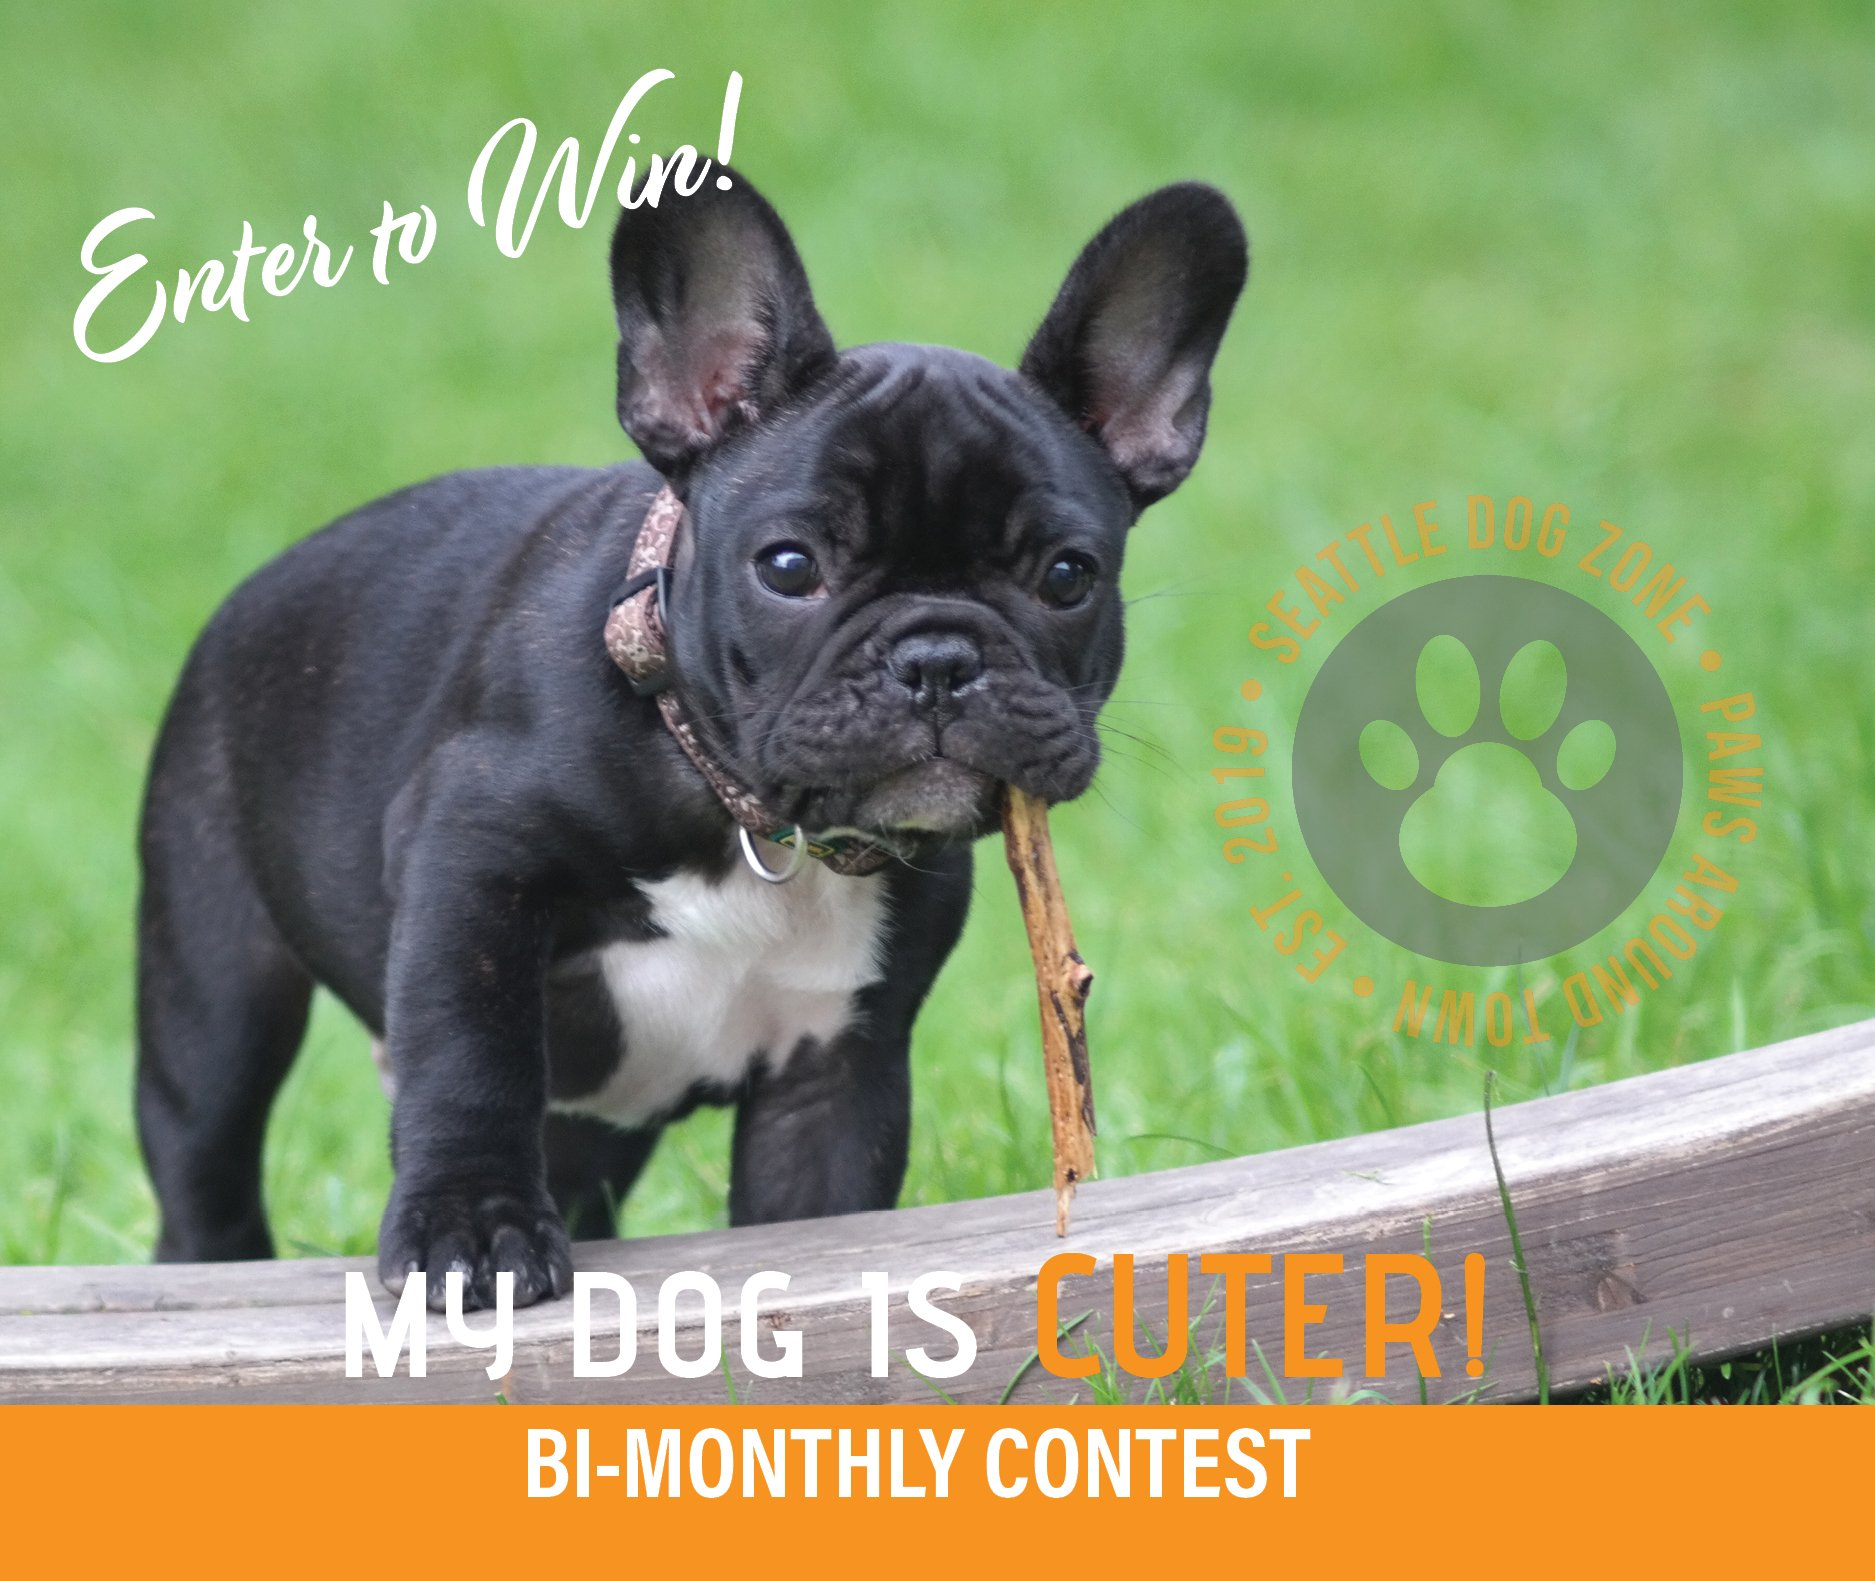 Enter to Win the My Dog is Cuter Bi-Monthly Contest